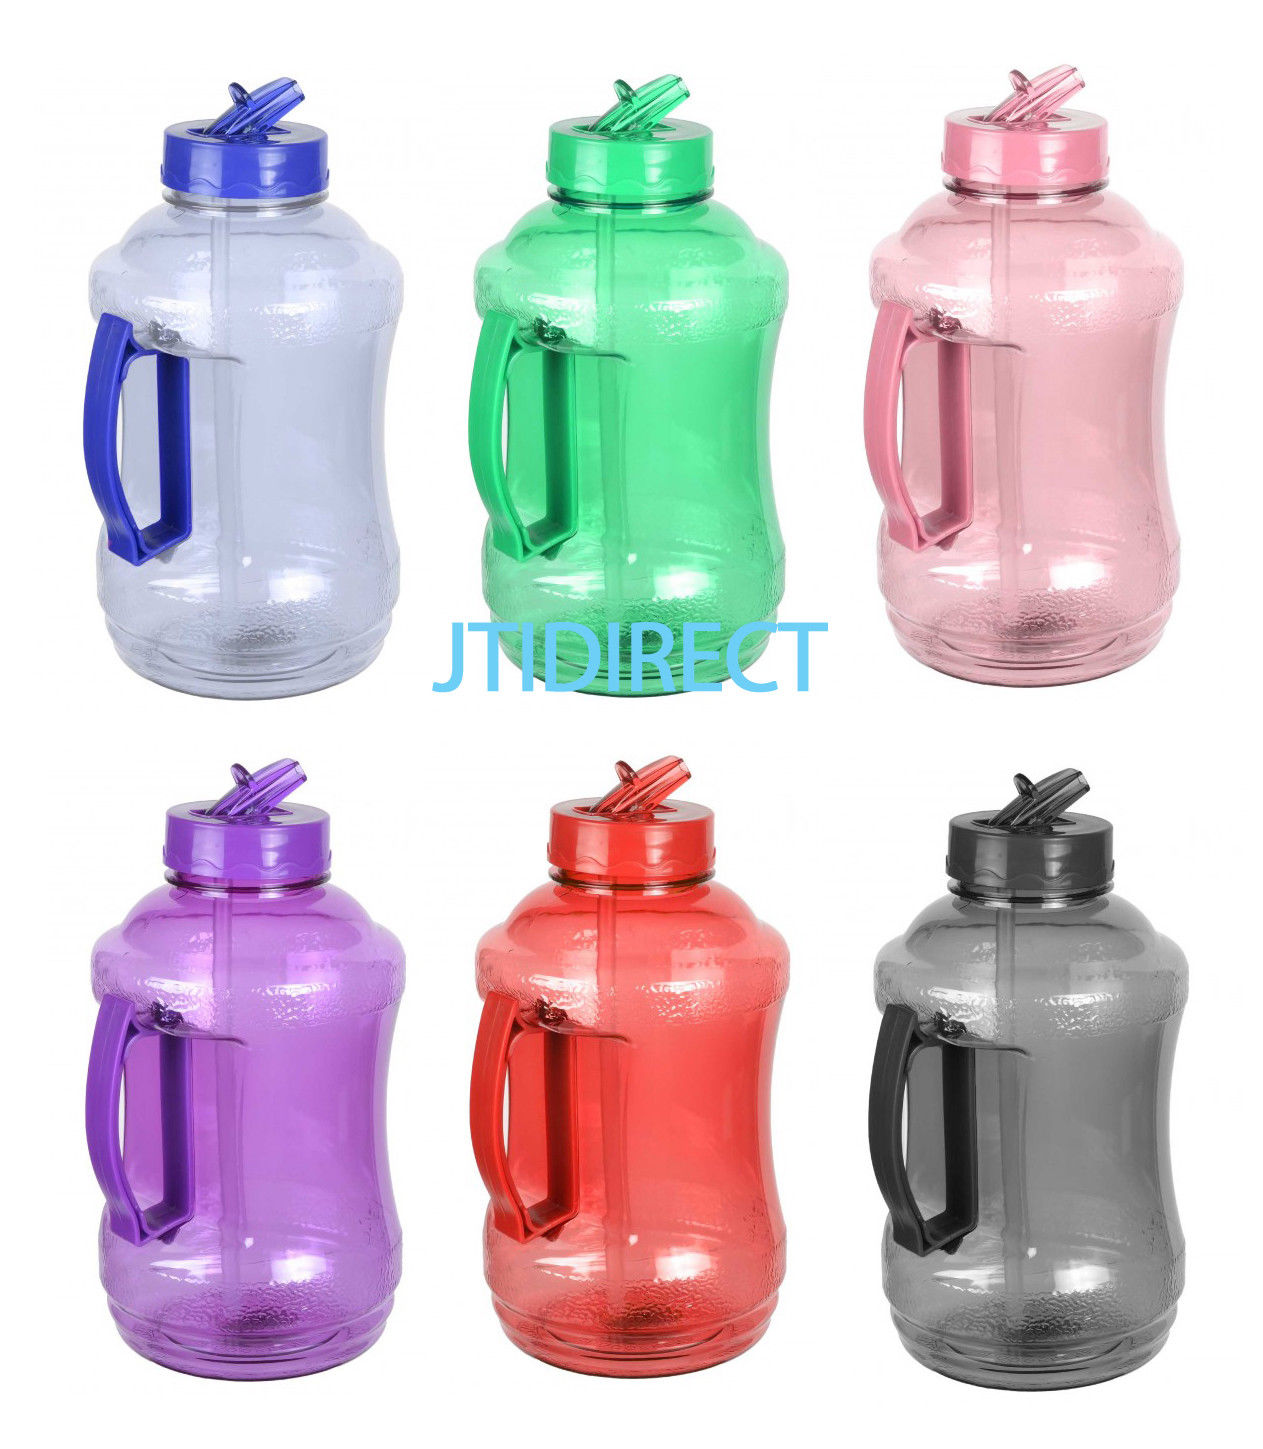 12 95 1 2 Gallon Bpa Free Water Bottle Drinking Canteen Jug Container W Straw Reuse Ebay Home Garden Kavanozlar